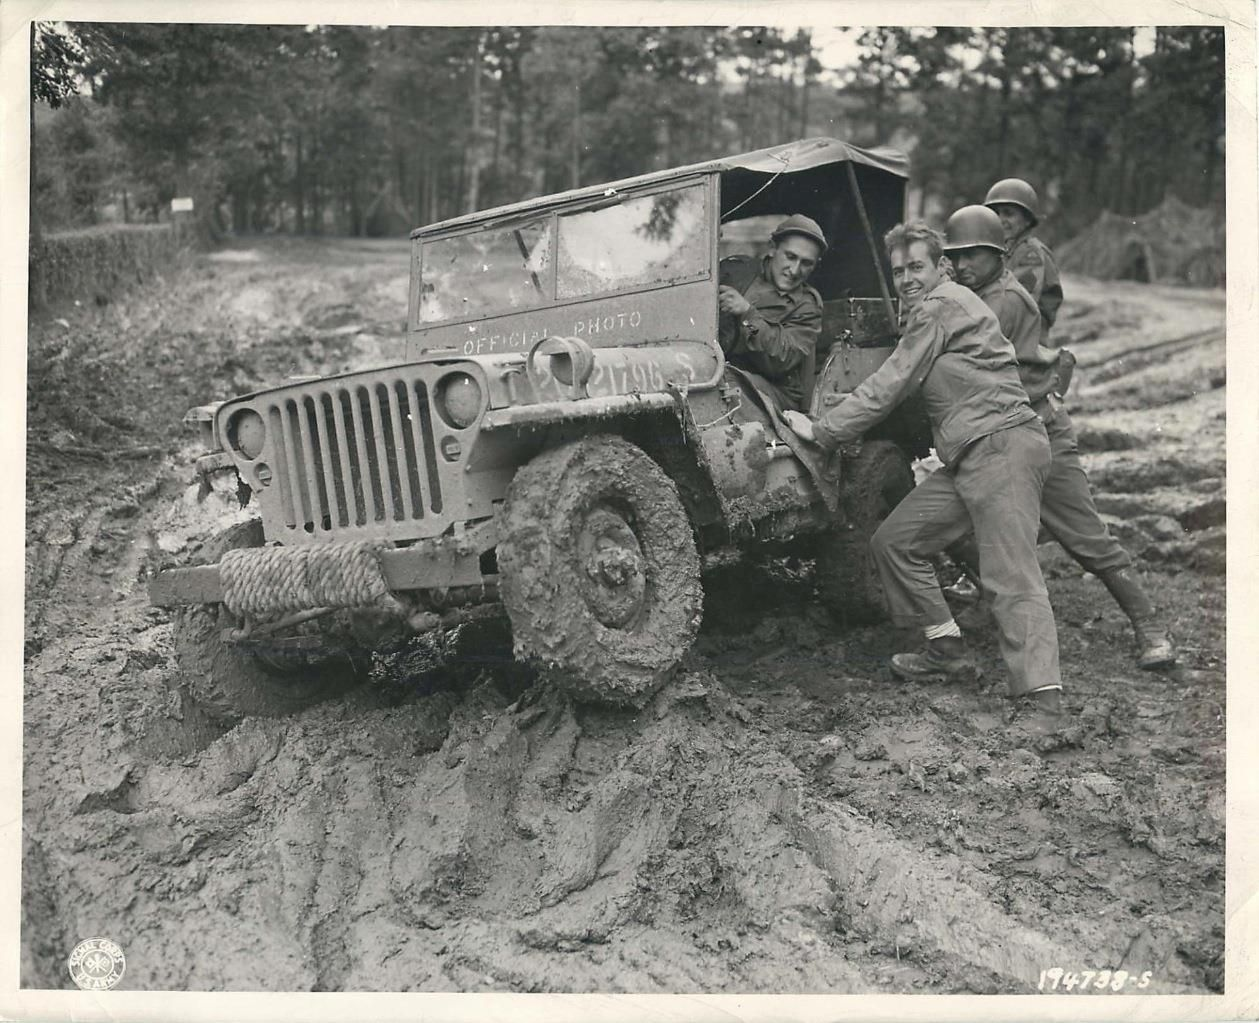 U.S. soldiers work to free jeep mired in the mud of Germany. October 1944